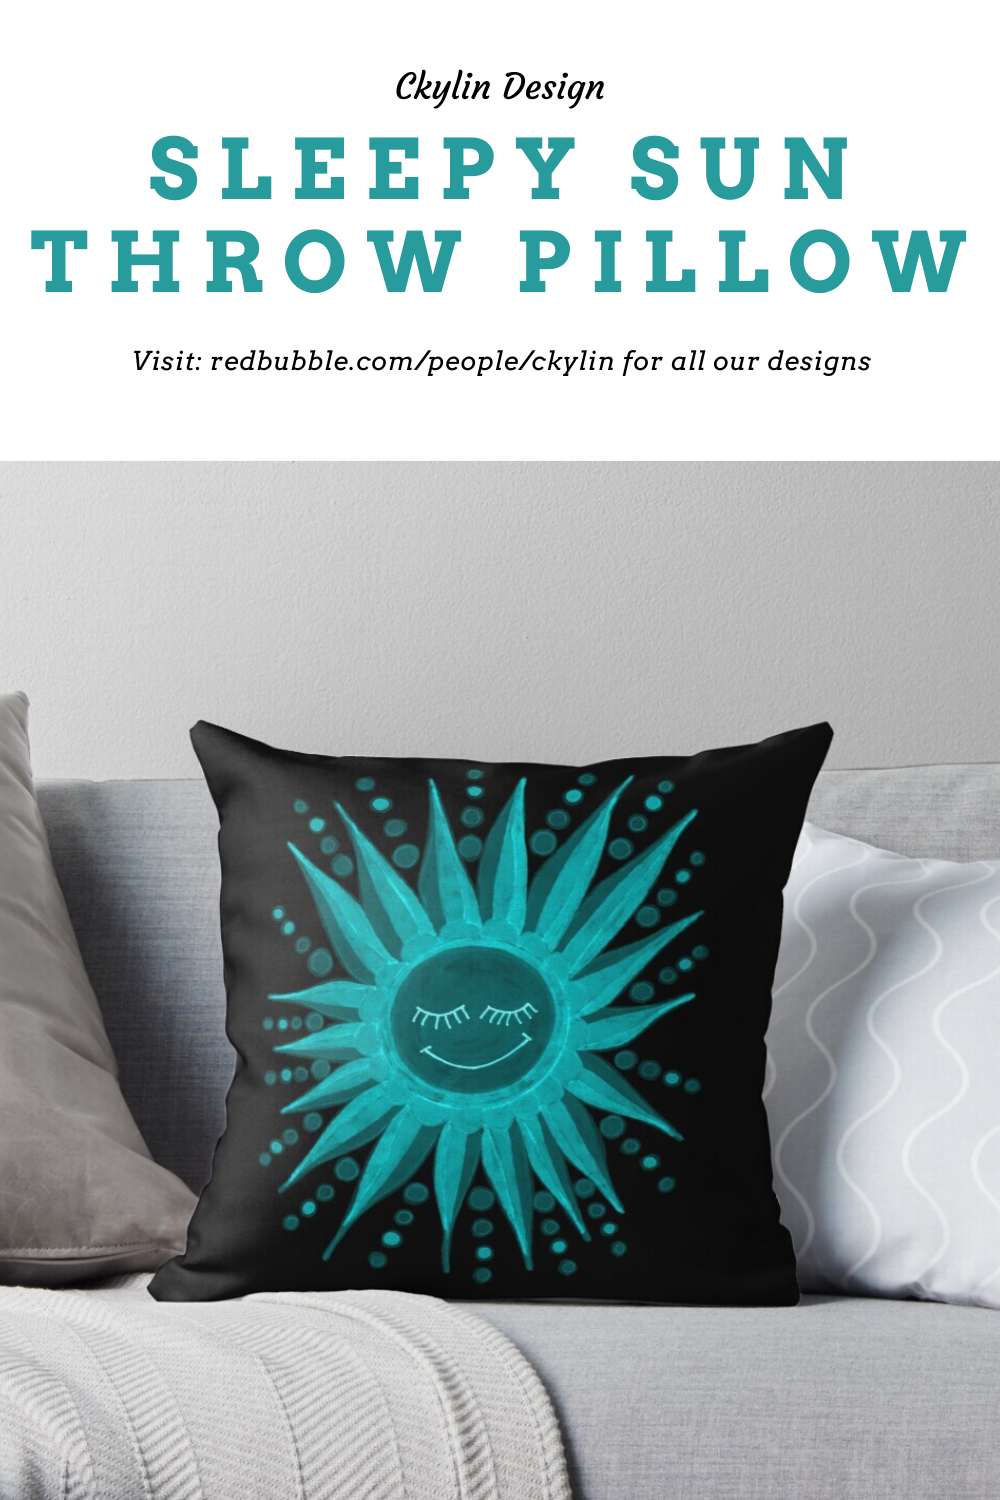 The Sleepy Sun throw pillow is available in my online store over at redbubble (following the link). The design is made first by hand, on a piece of paper, then uploaded, edited, and printed. This pillow design is available on several different sized pillows and cushions. The design was inspired by summer!  #throwpillow #pillowdesign #sunnypattern #pillowlove #sunshinelove #pillowfight #homedecor #couchinspo #pillowinspo #throwpillows